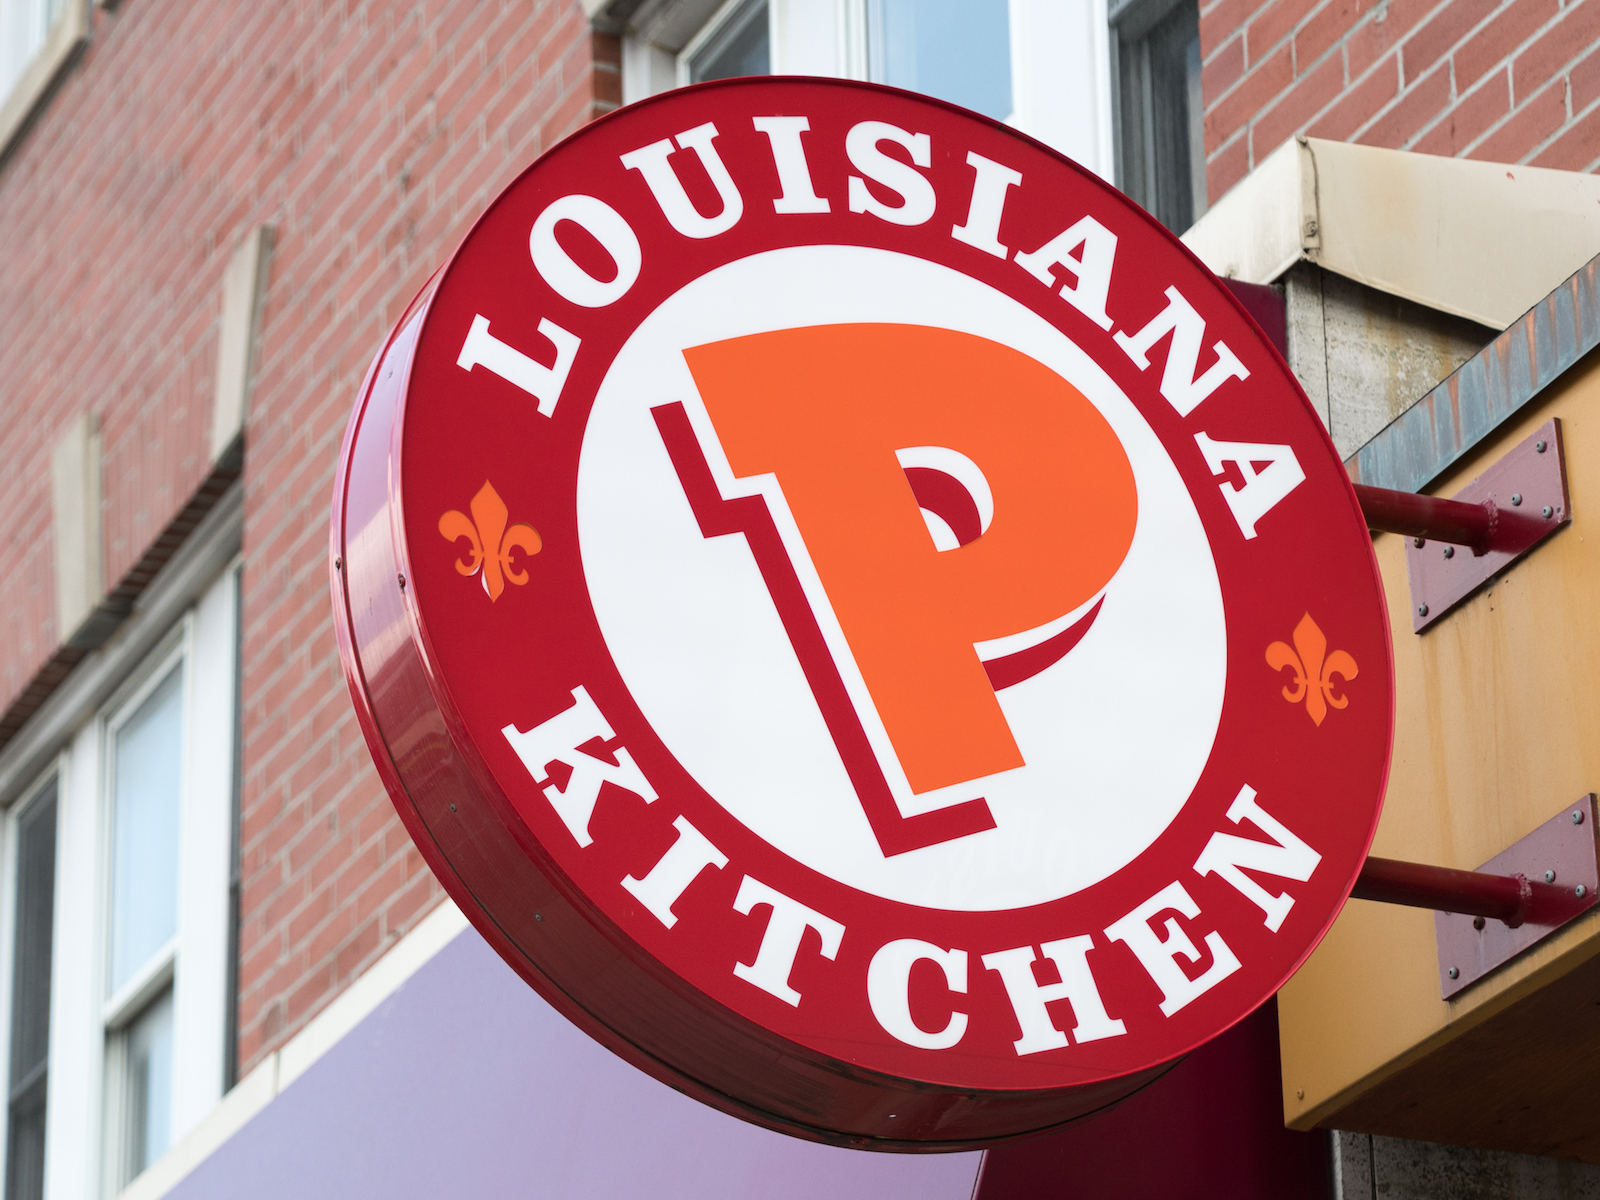 Restaurant Admits It Gets Its Chicken From Popeyes